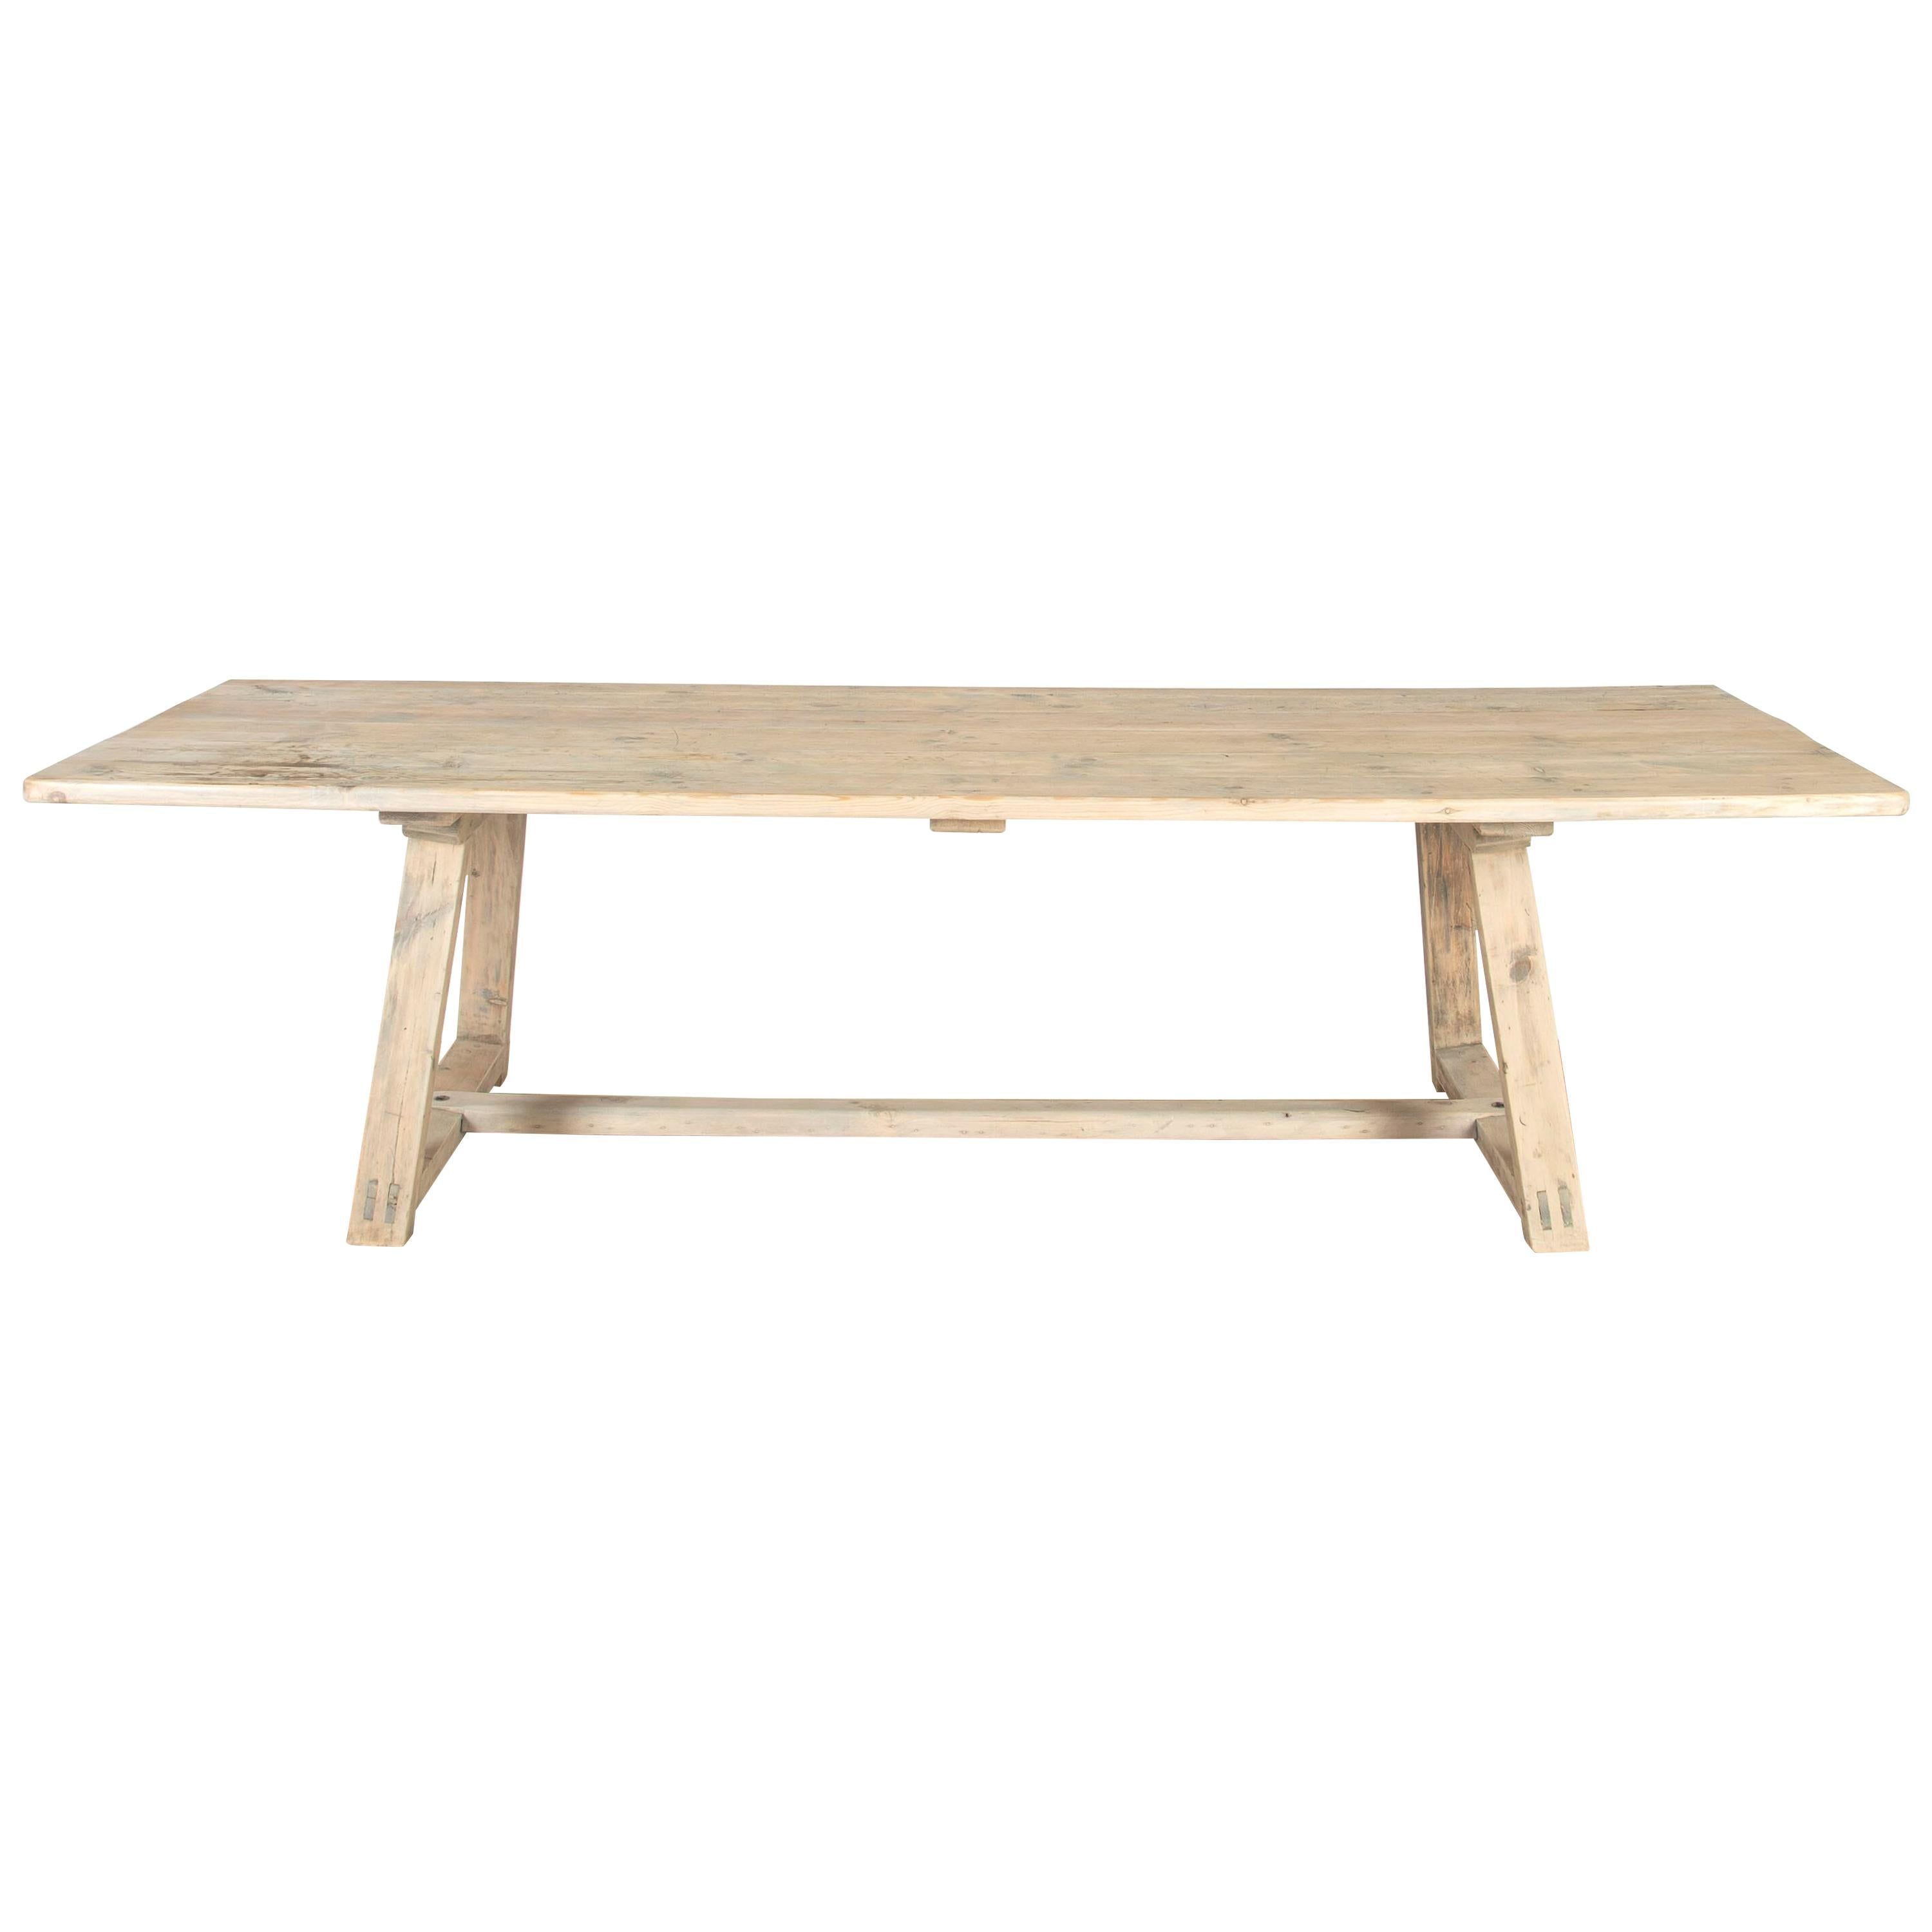 Early 20th Century French Pine Table